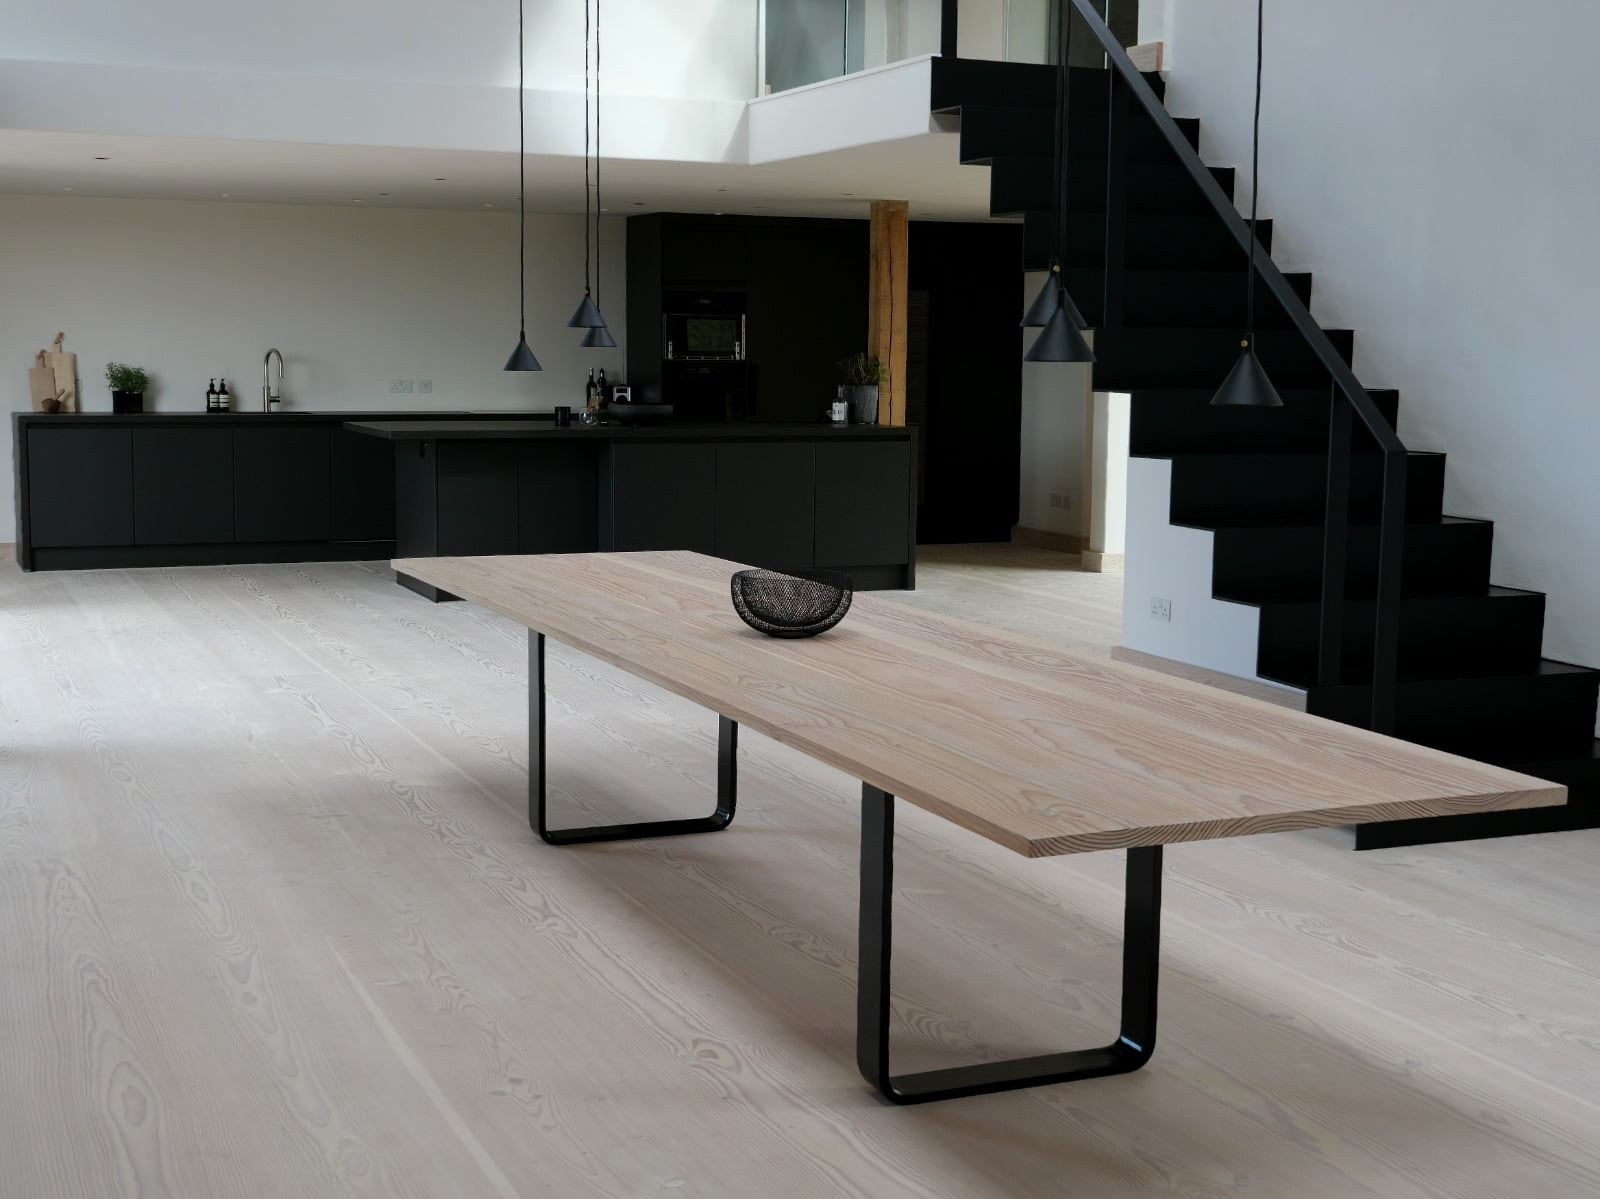 Image of a Table